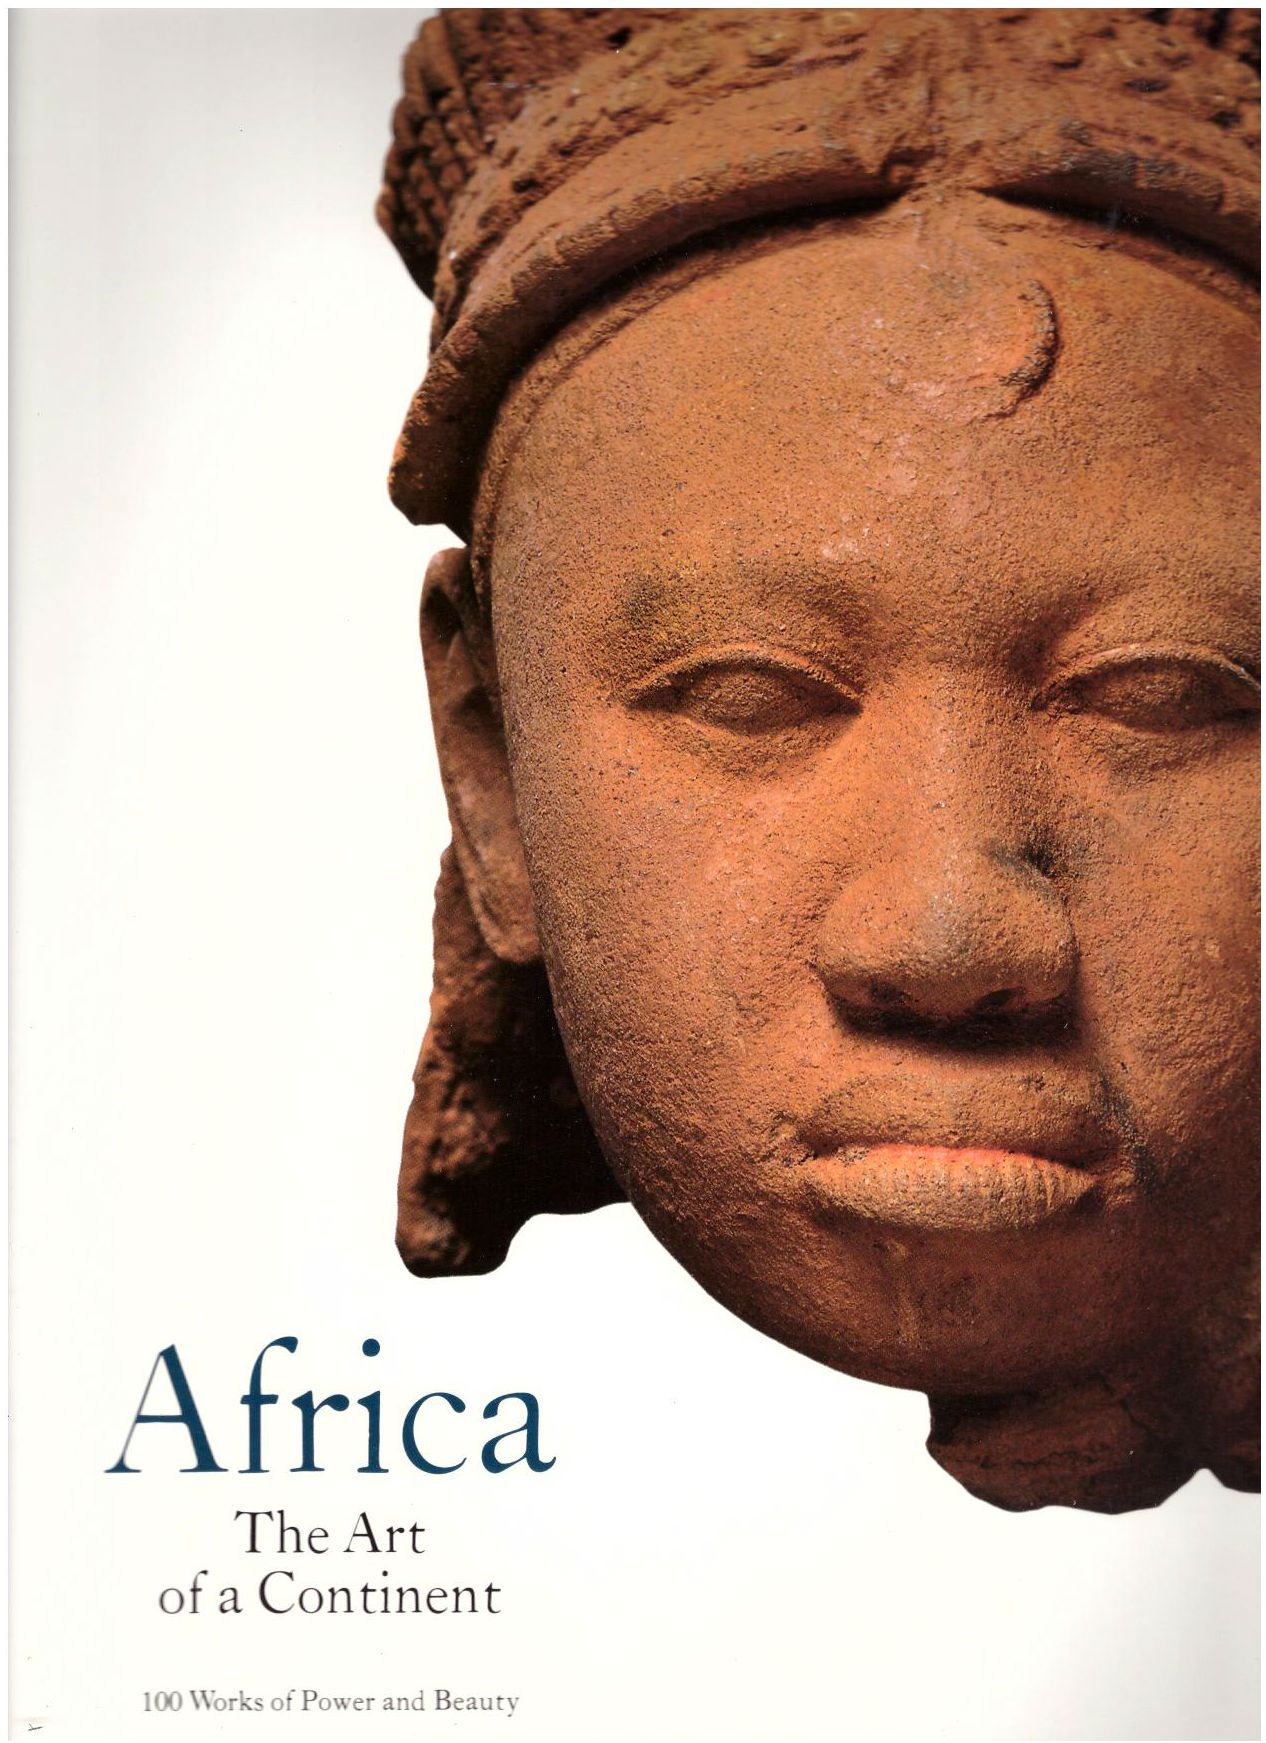 Africa: The Art of a Continent: 100 Works of Power and Beauty, (Exhibition Catalogue).